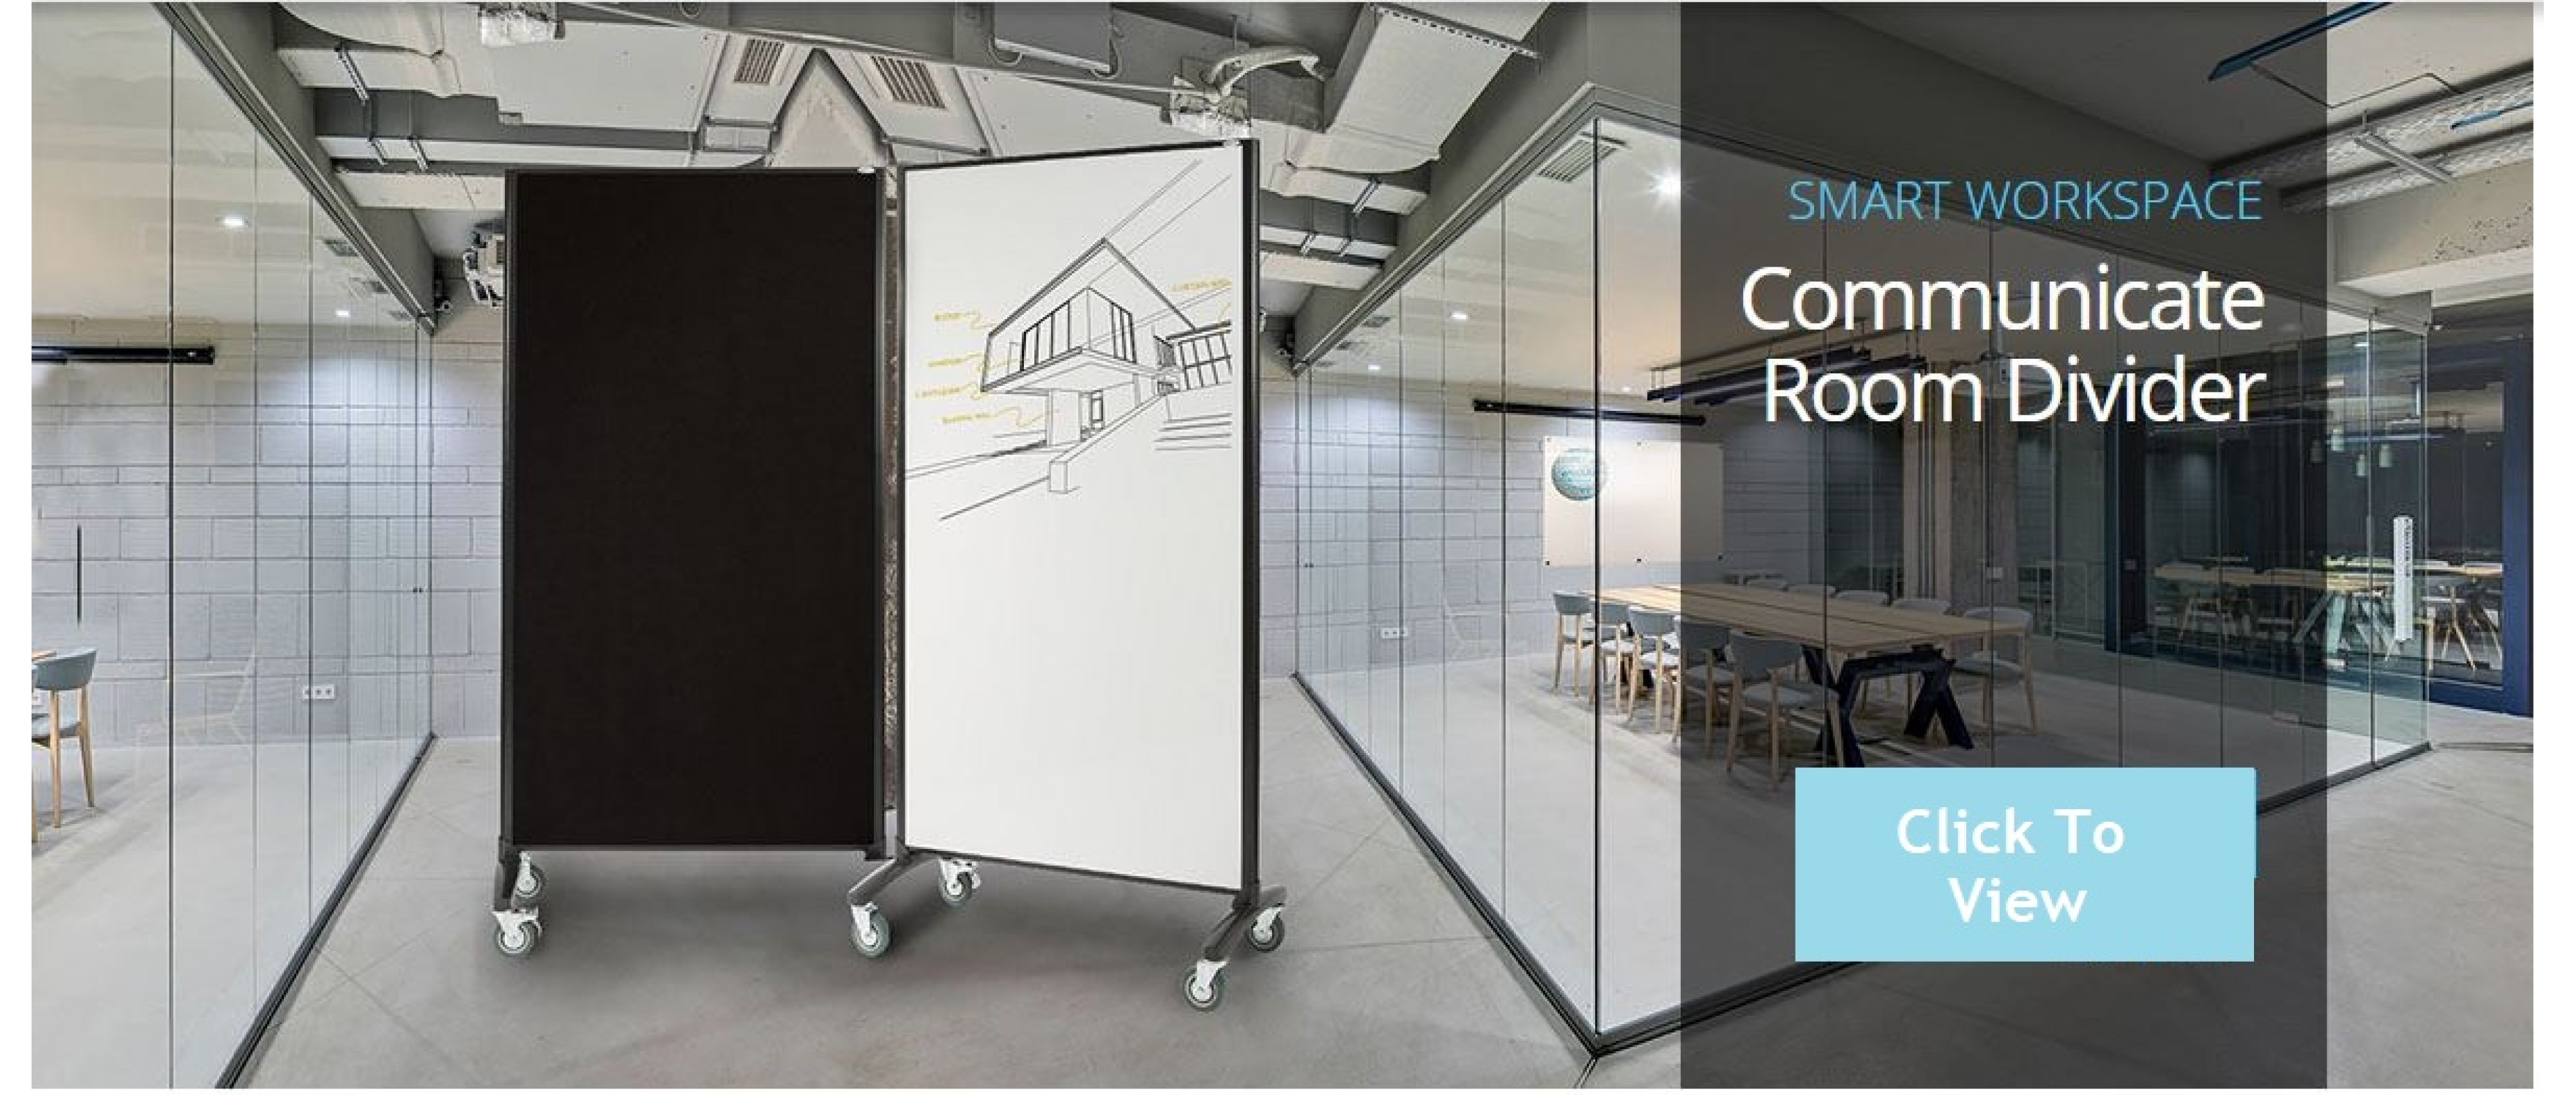 Communicate Room Dividers Banner (b)